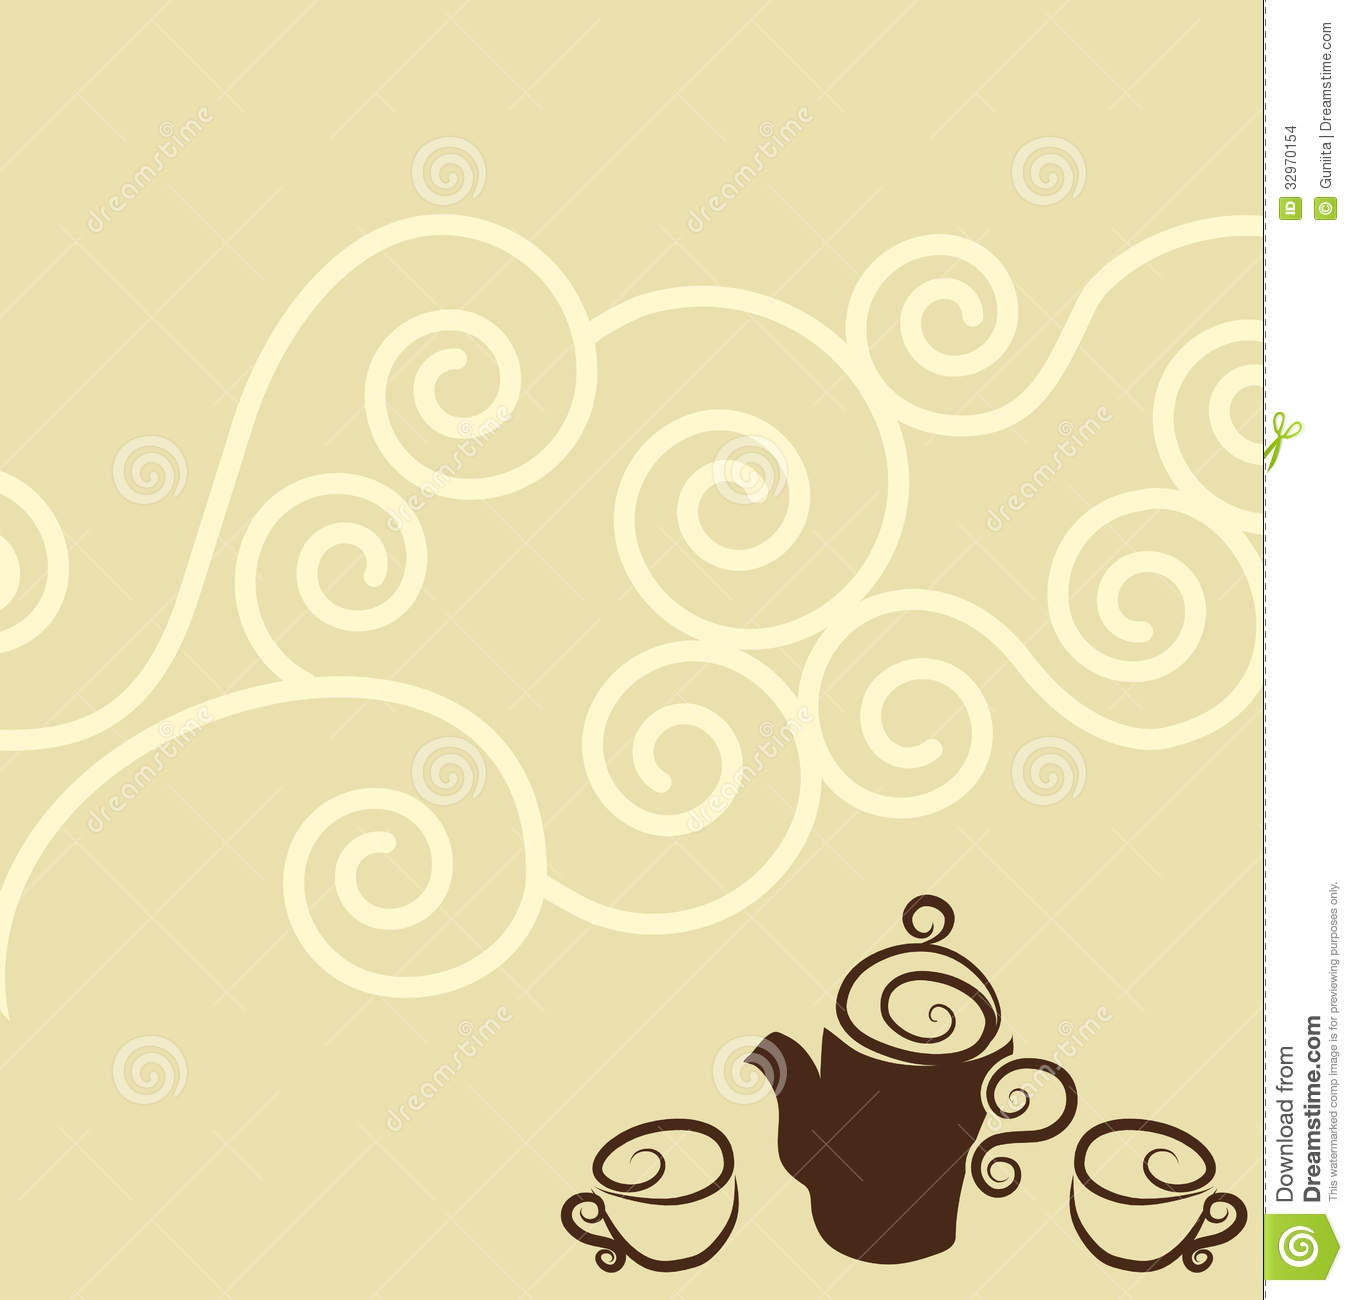 Coffee Wallpaper Design Stock Images Image 32970154